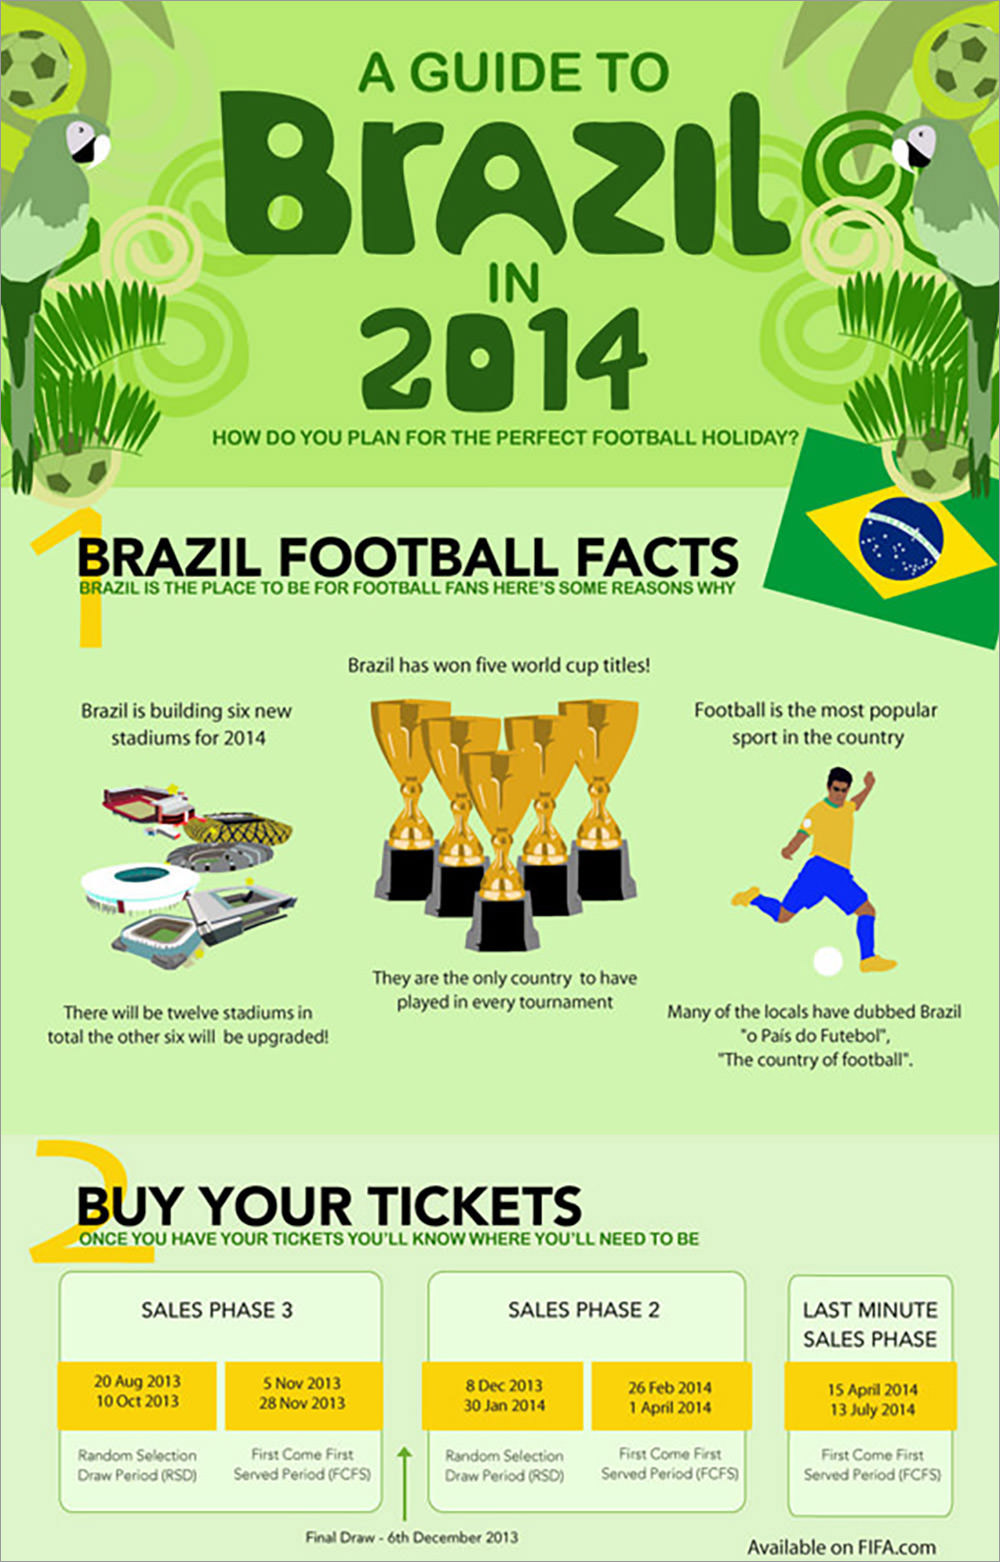 A Guide To Brazil In 2014